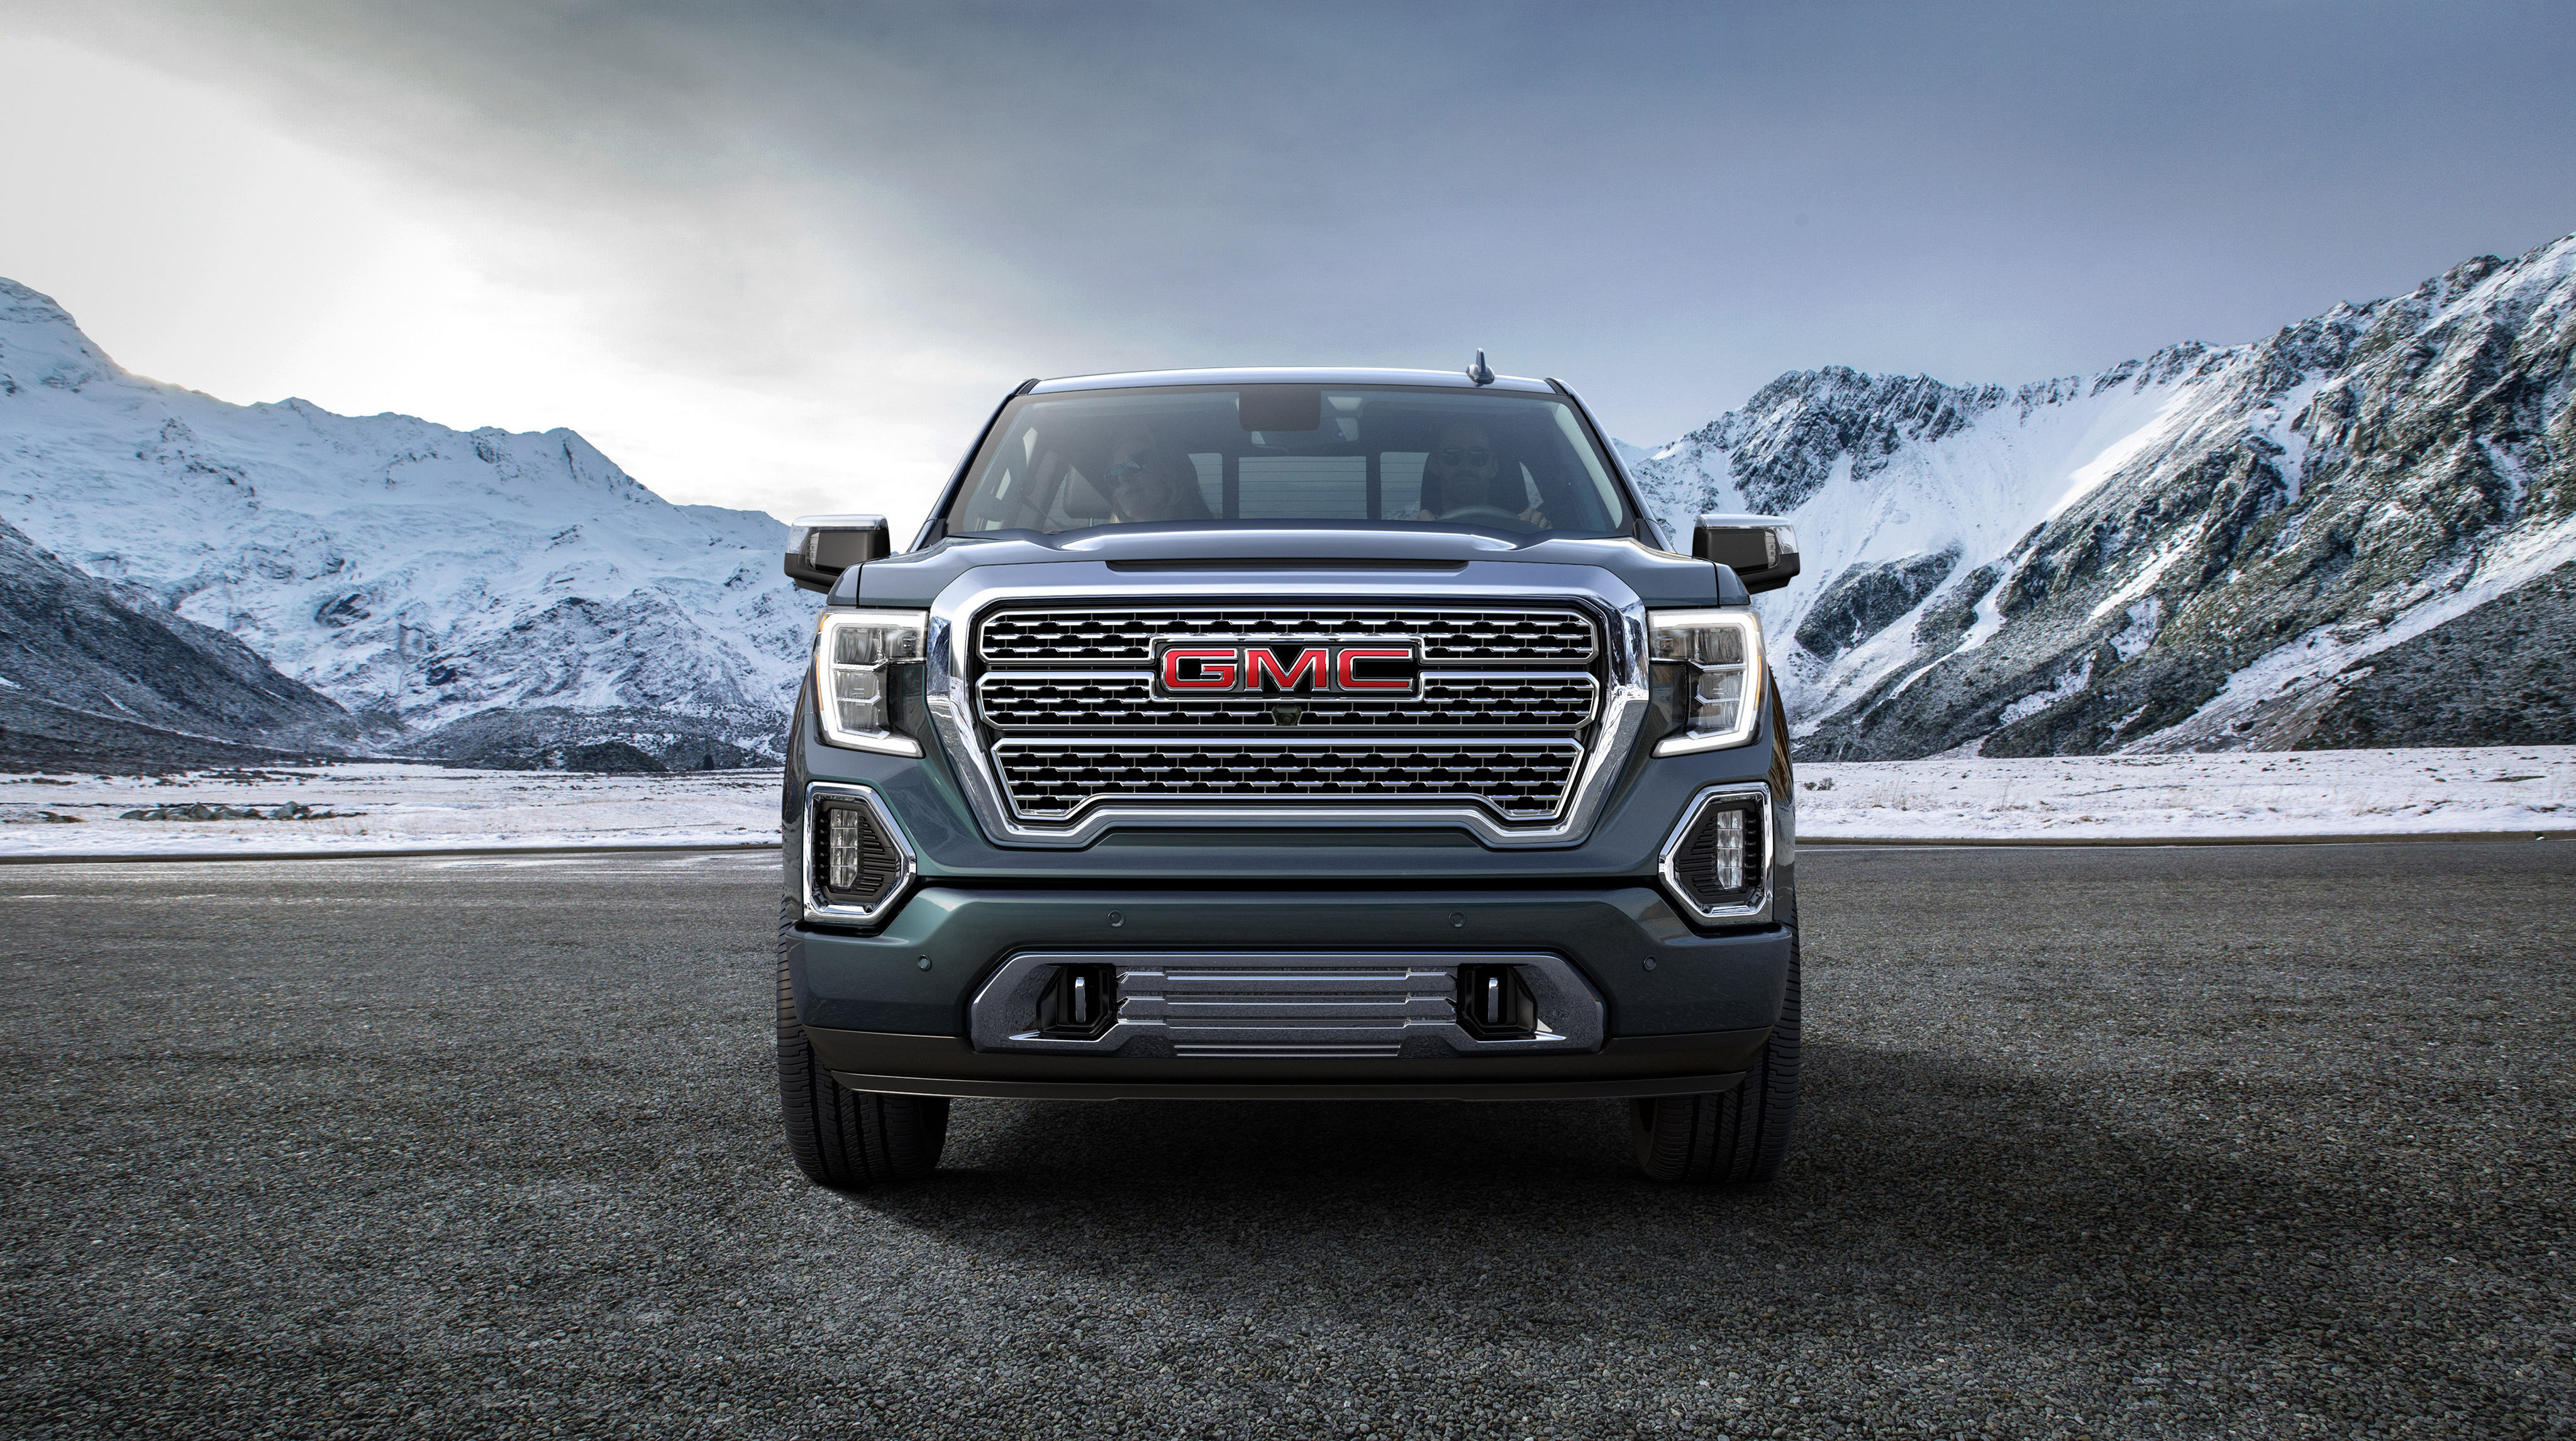 2019 GMC Sierra HD Cars 4k Wallpapers Images Backgrounds Photos